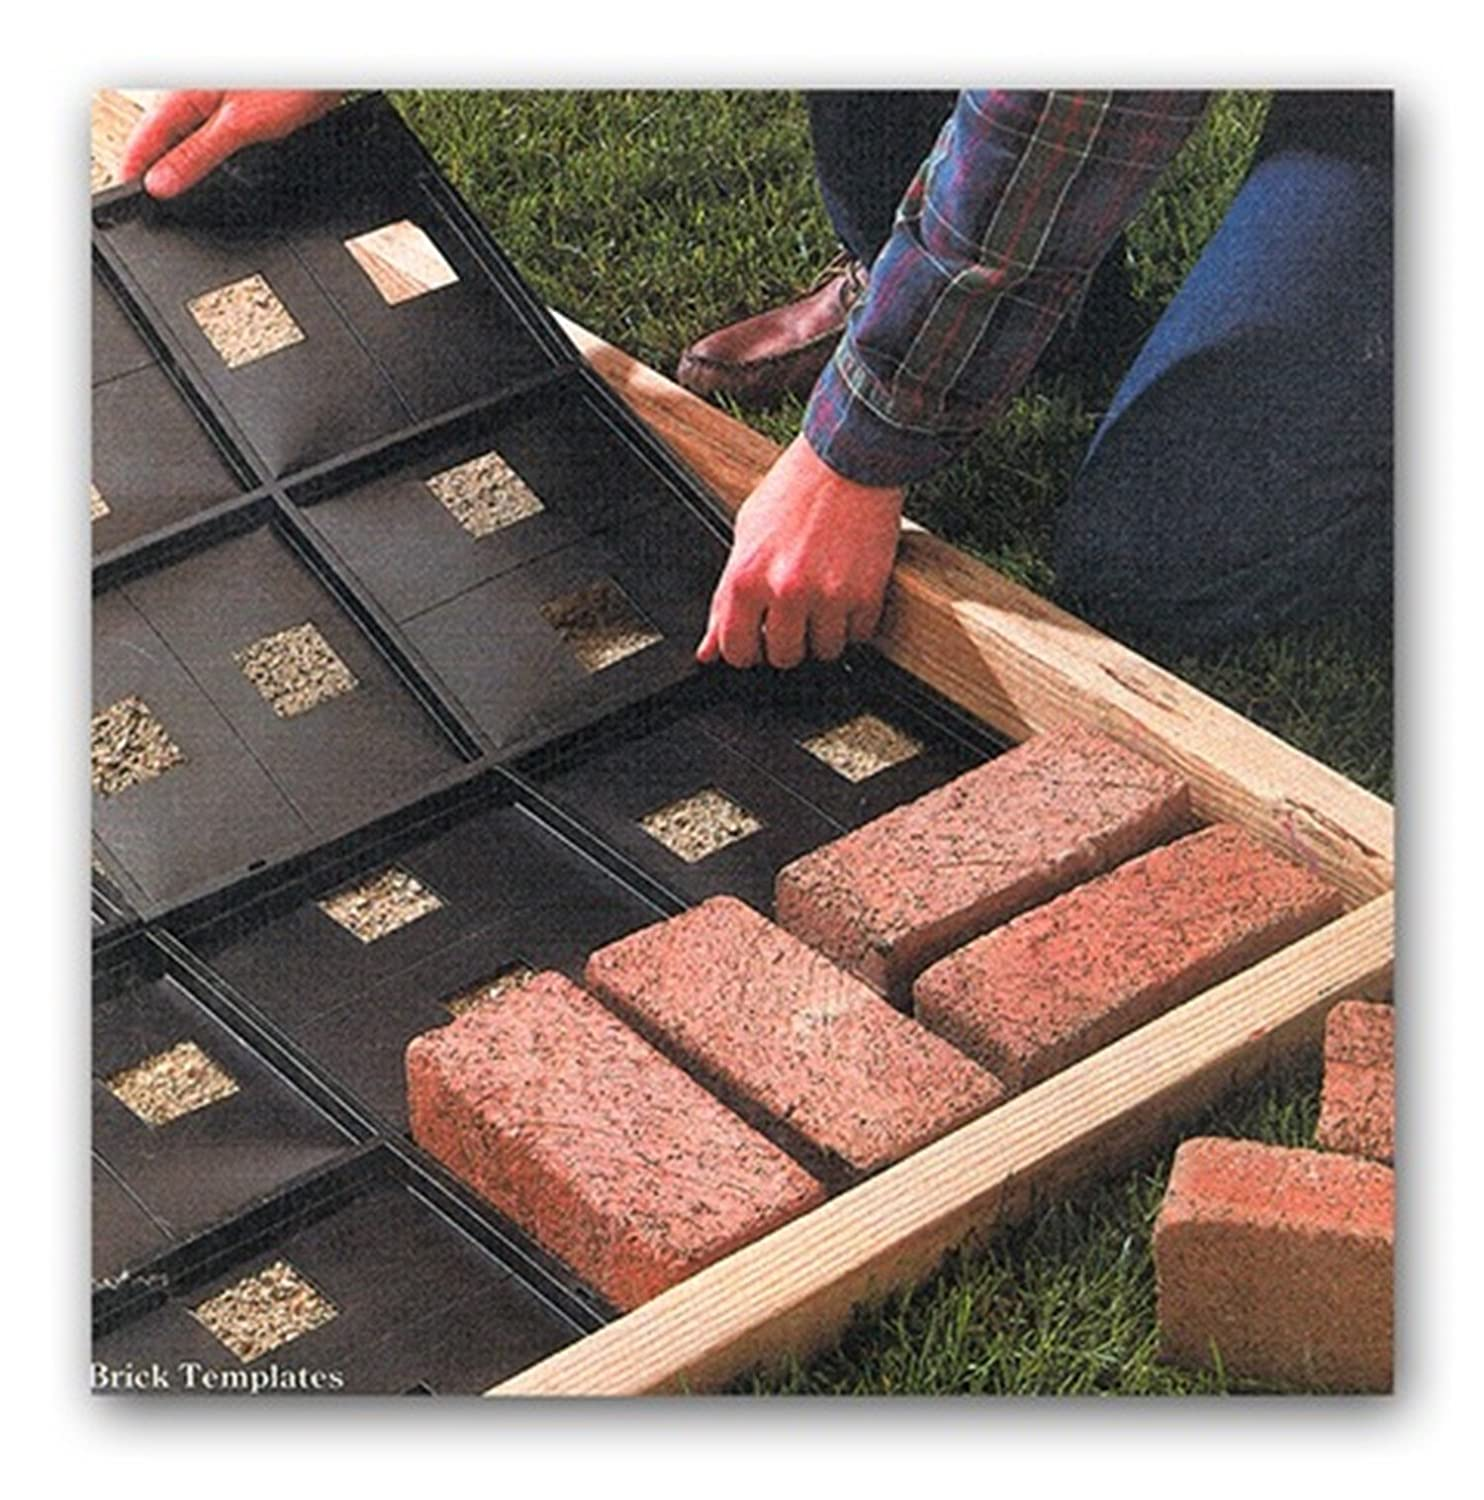 Merveilleux Amazon.com : Argee Patio Pal Brick Laying Guides, Covers Approx. 20 Square  Feet RG191/10 : Garden U0026 Outdoor